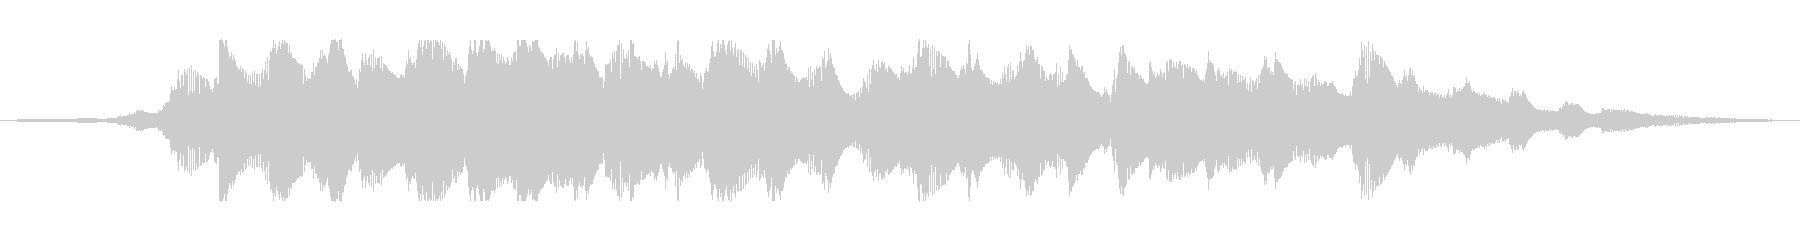 Bjo Boho (the universe is a mystery 3)'s unreproduced waveform